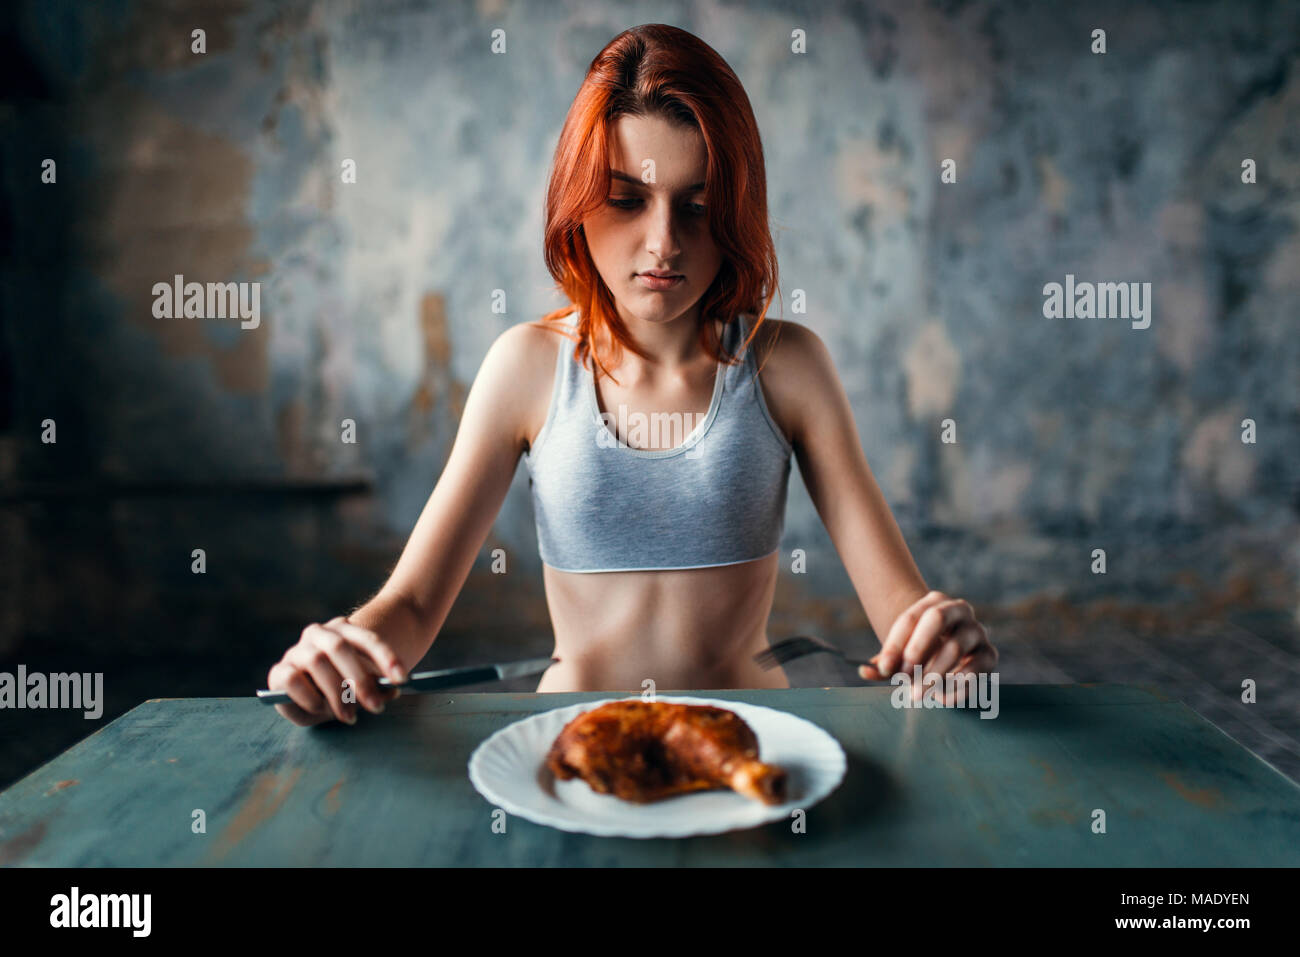 Woman against plate with food, absence of appetite - Stock Image